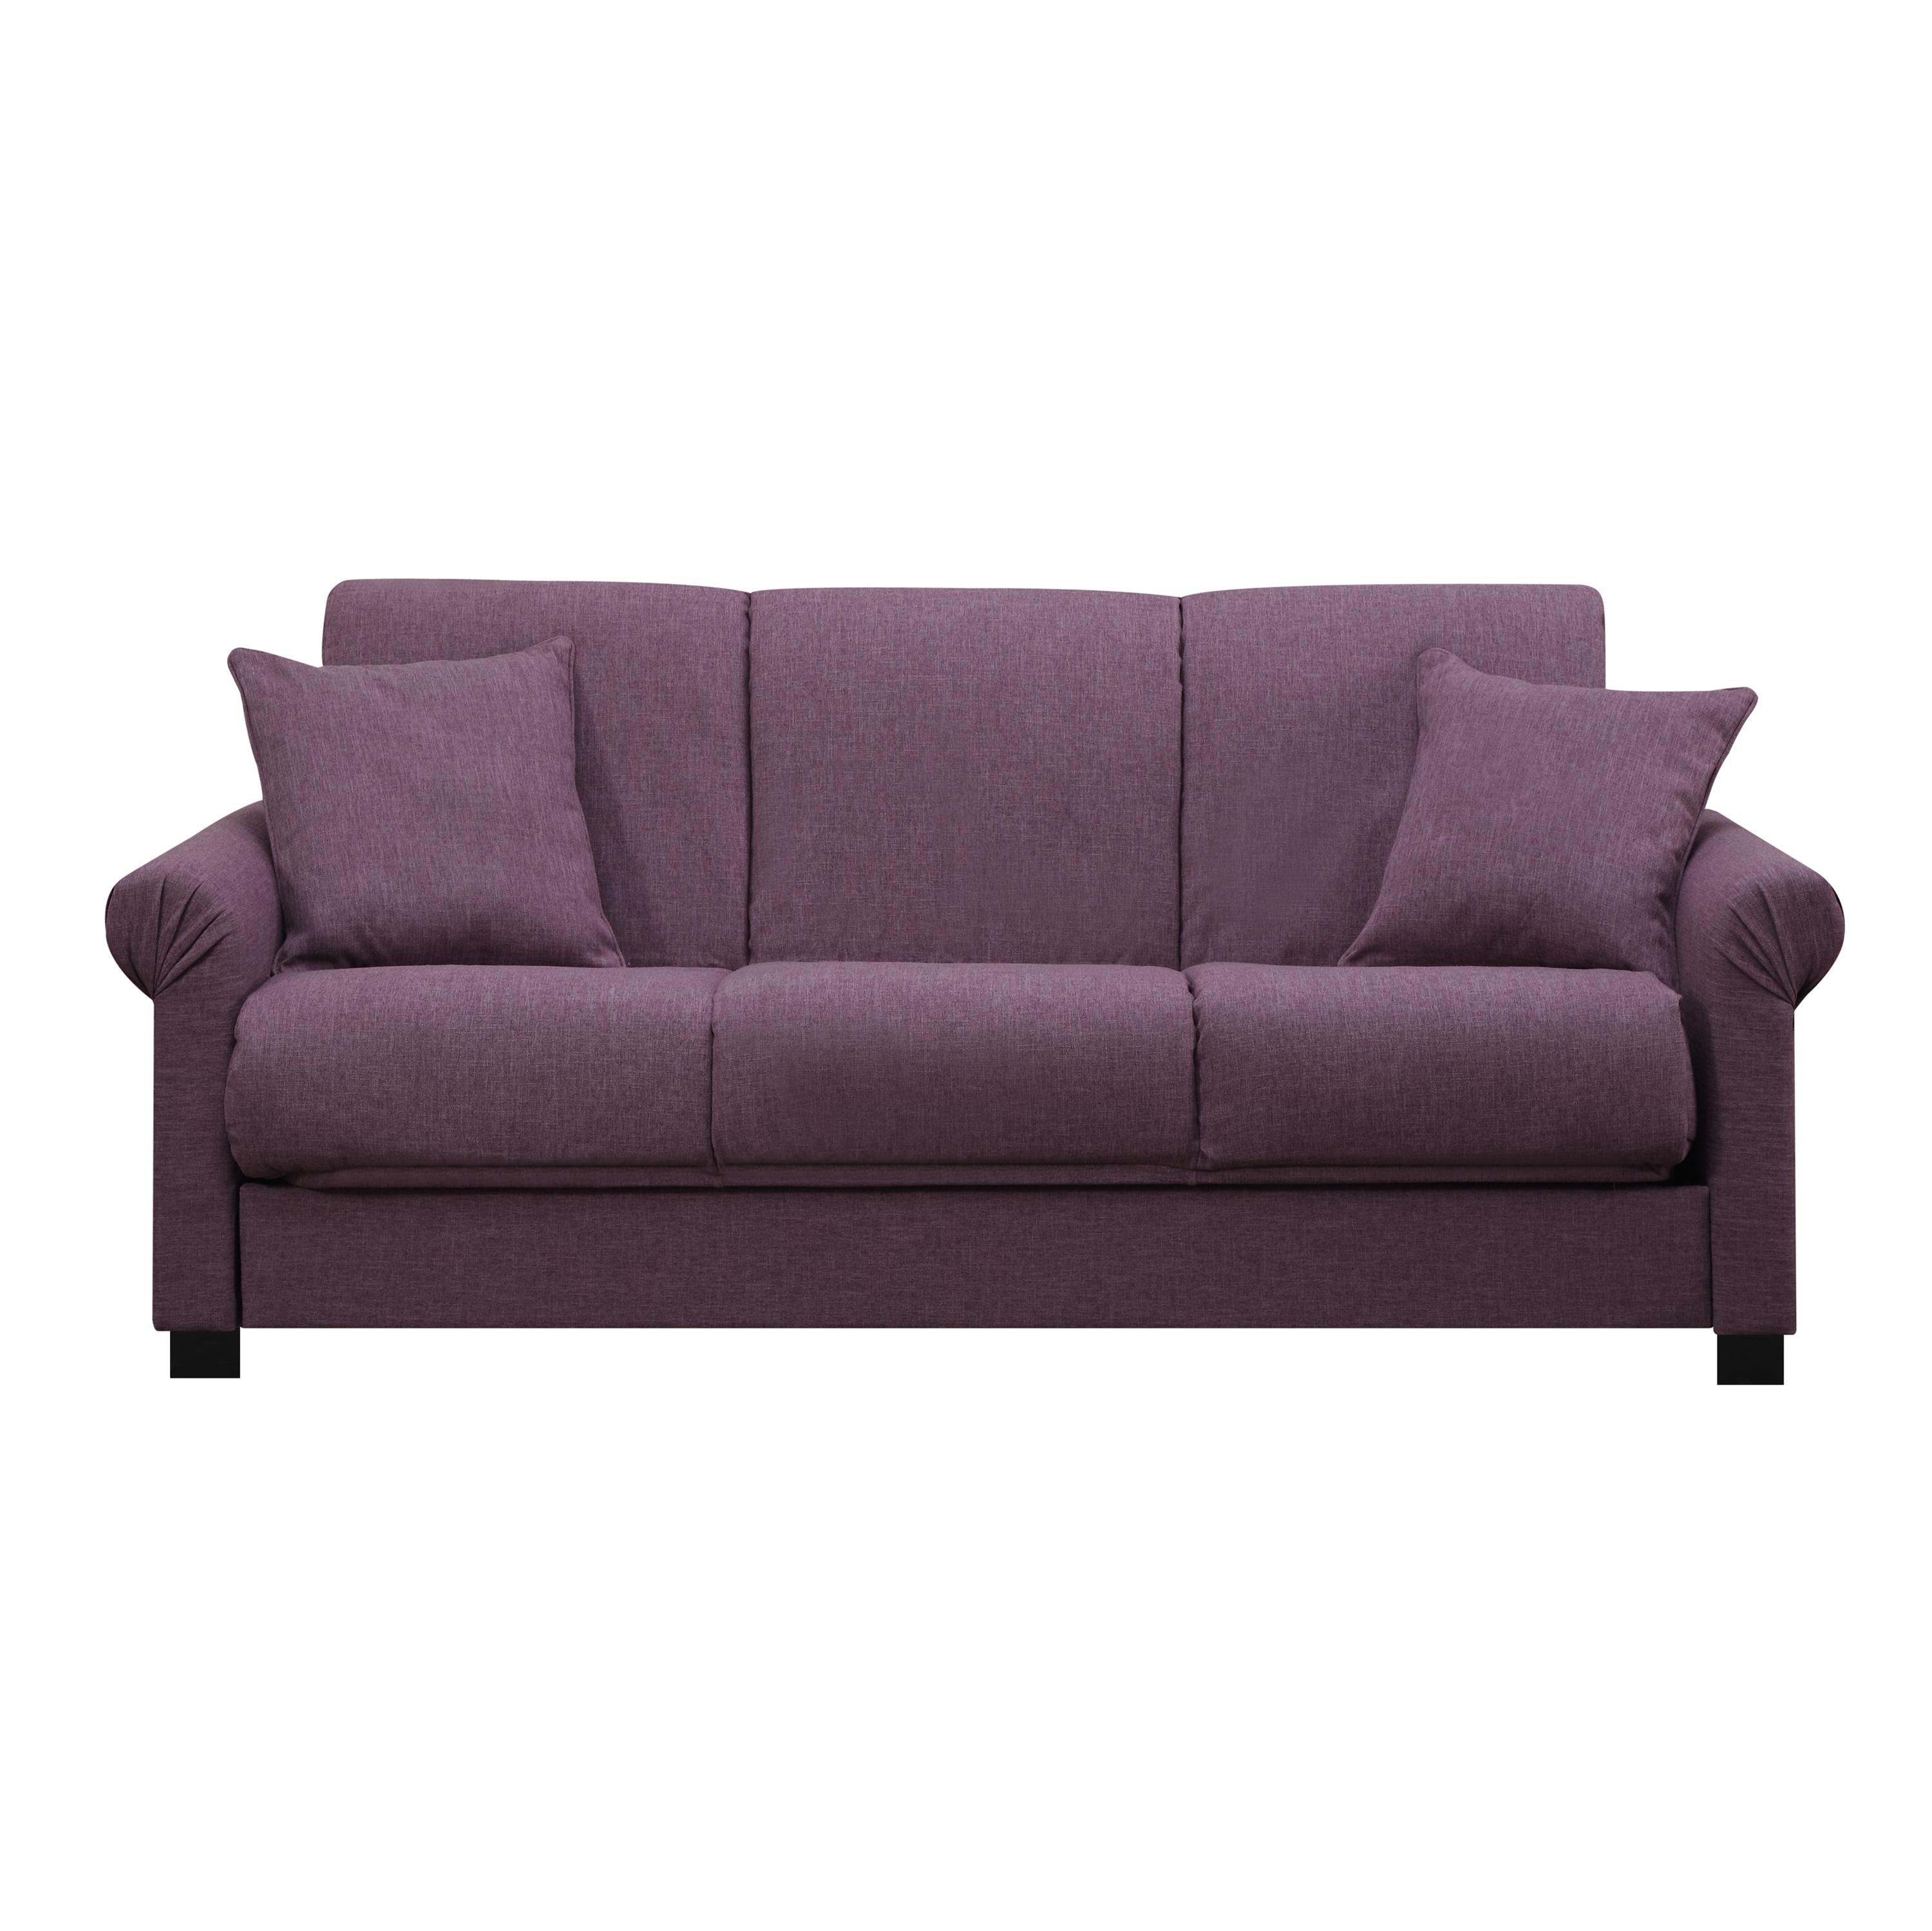 Enhancing a stylish home with sectional sleeper sofa ikea for Sleeper sectional